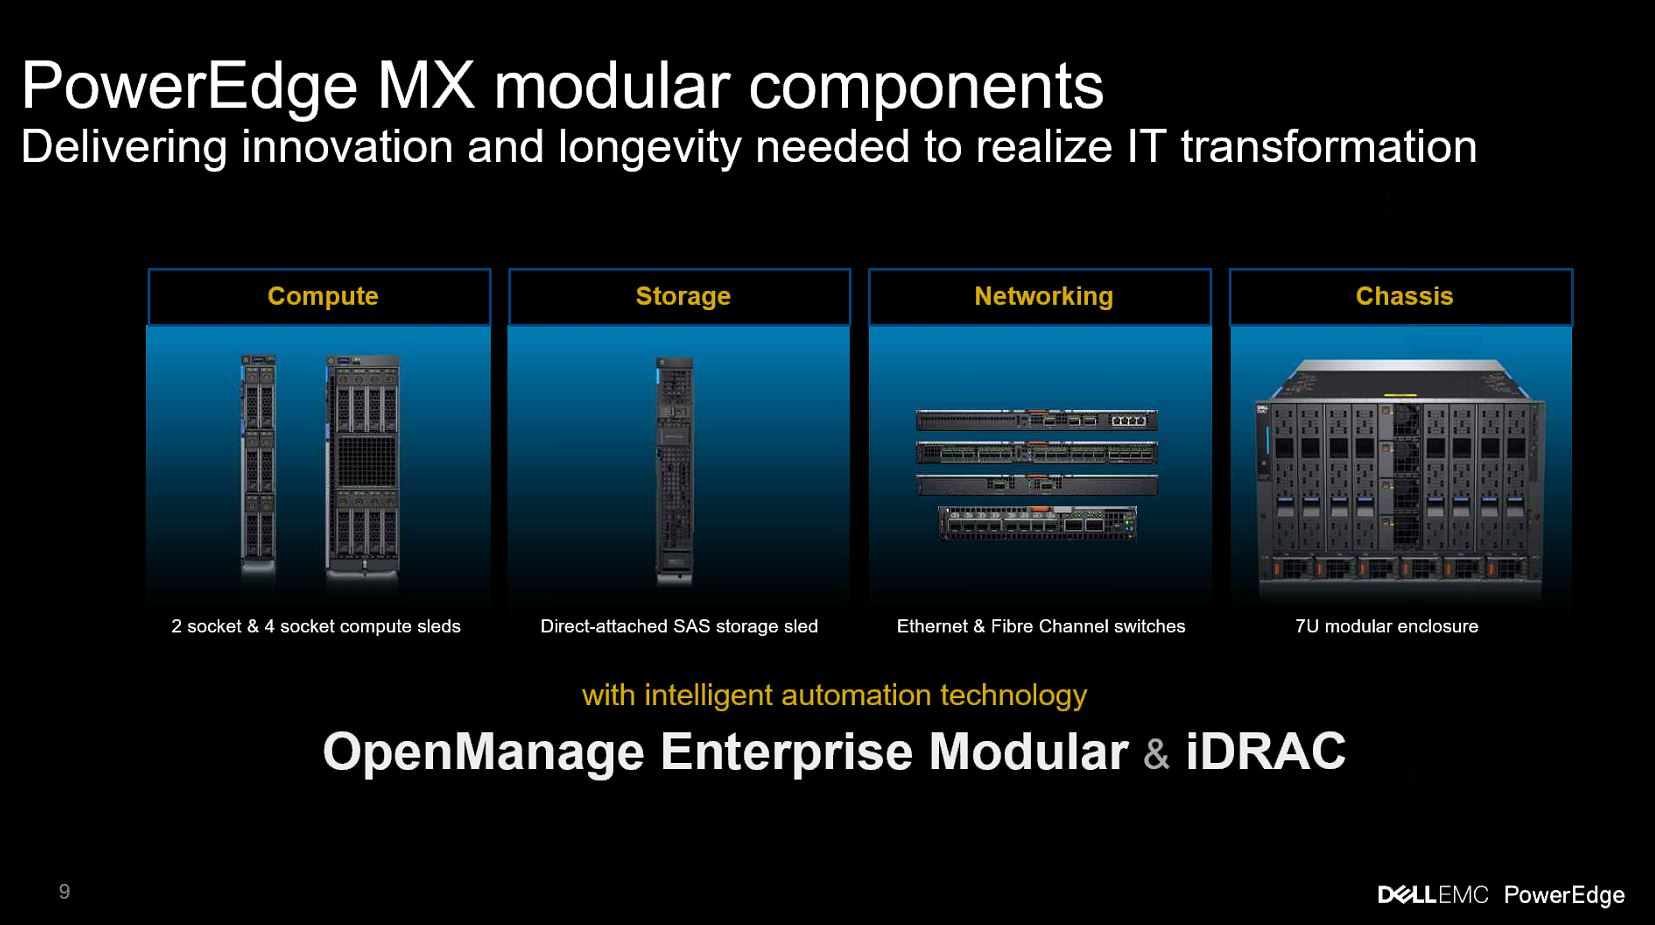 Dell EMC PowerEdge MX Modular Components